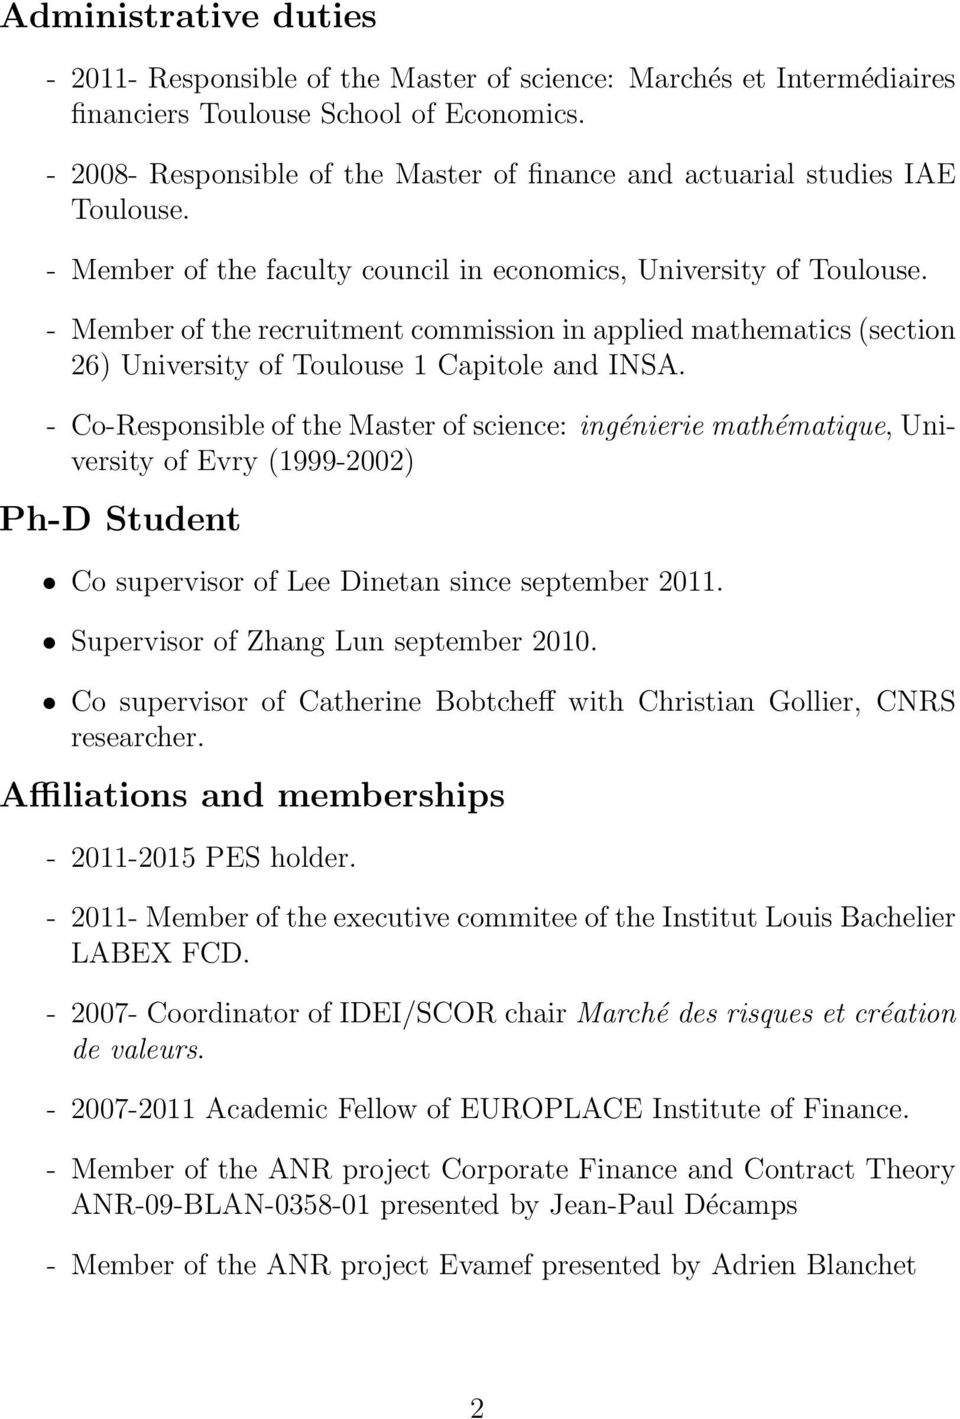 - Member of the recruitment commission in applied mathematics (section 26) University of Toulouse 1 Capitole and INSA.